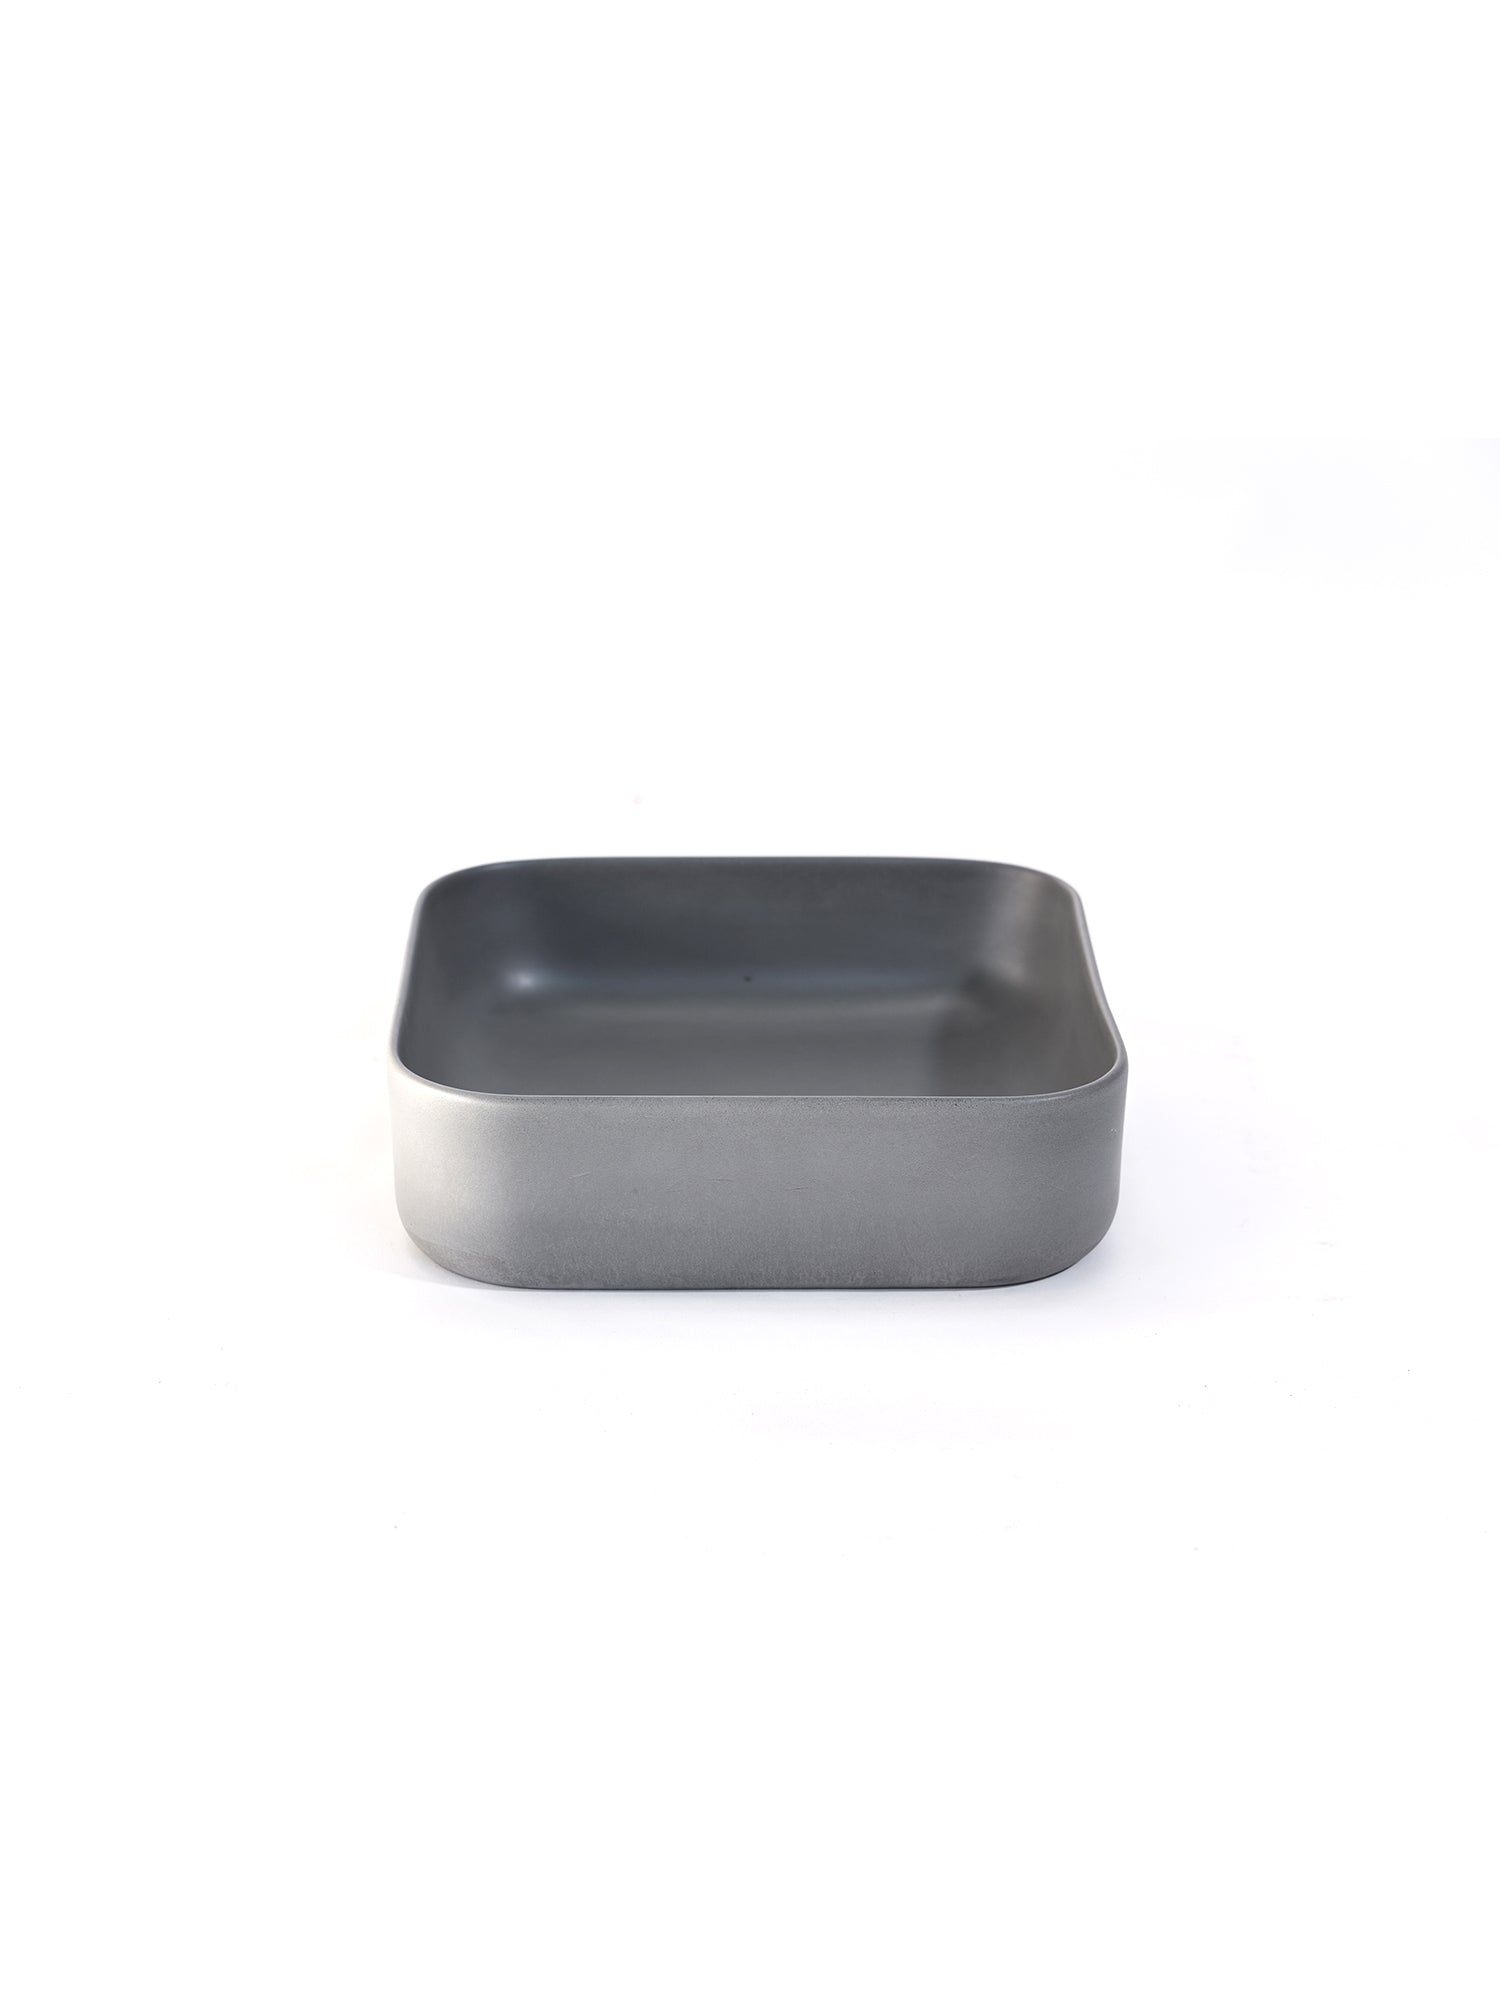 Cube Concrete Countertop Basin (Avail. in 14 Colours)